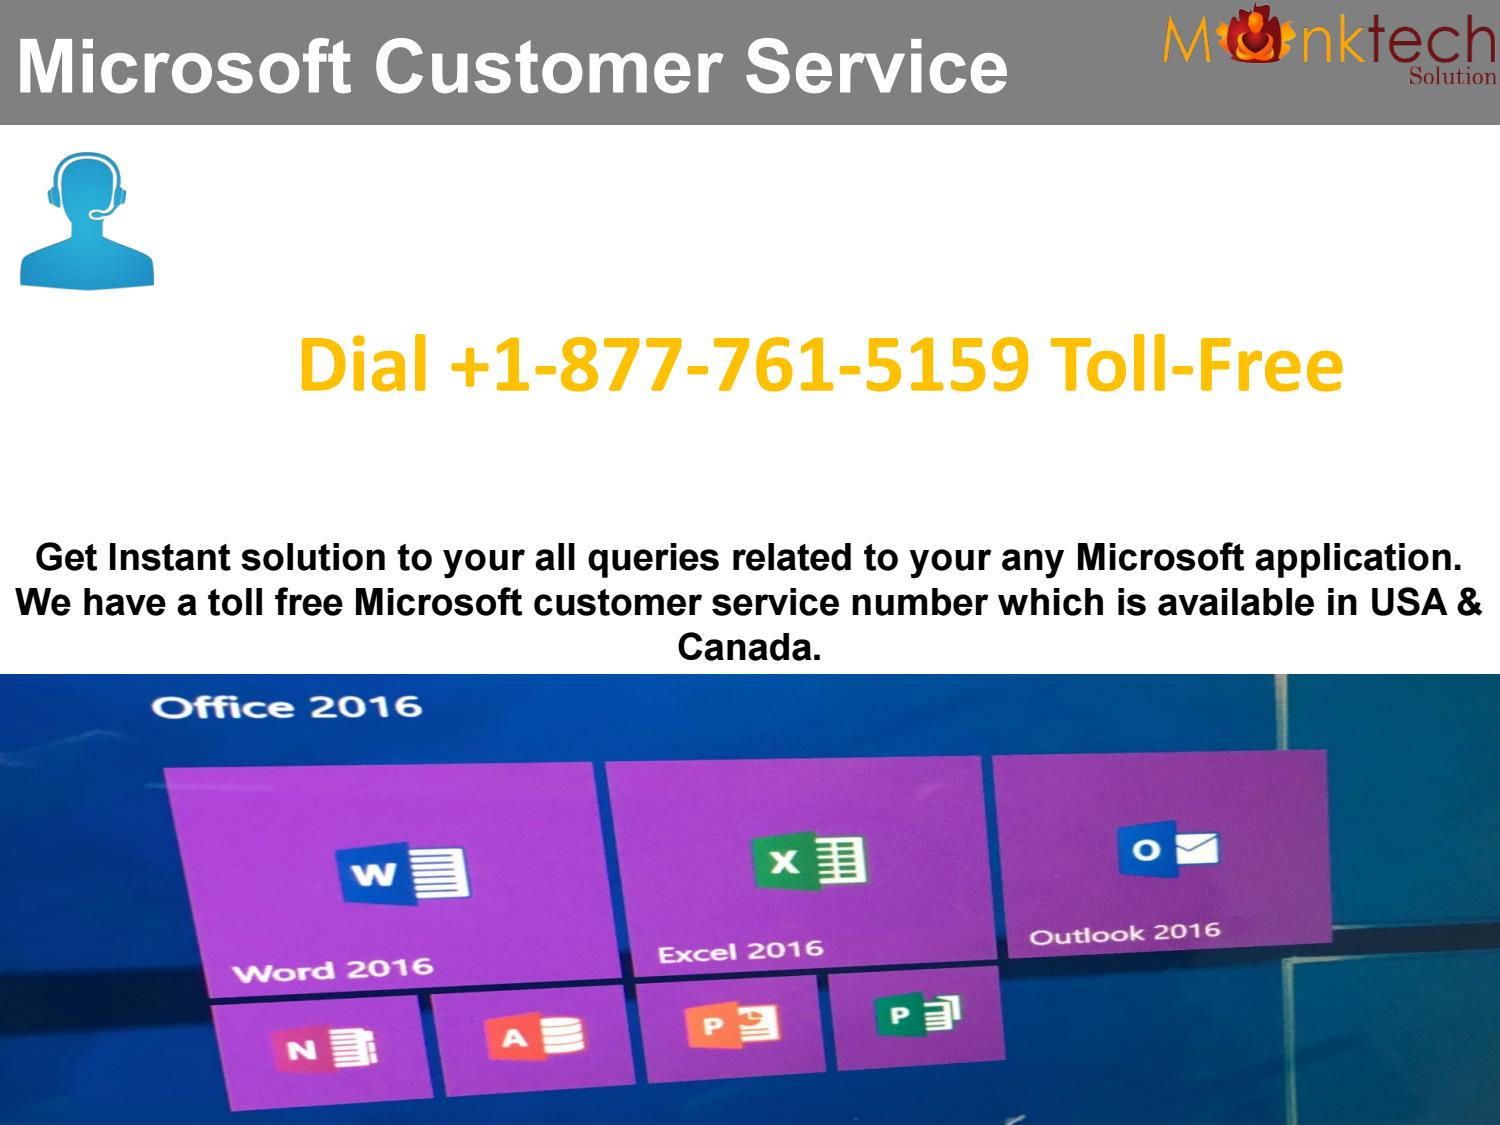 for microsoft customer service dial 1